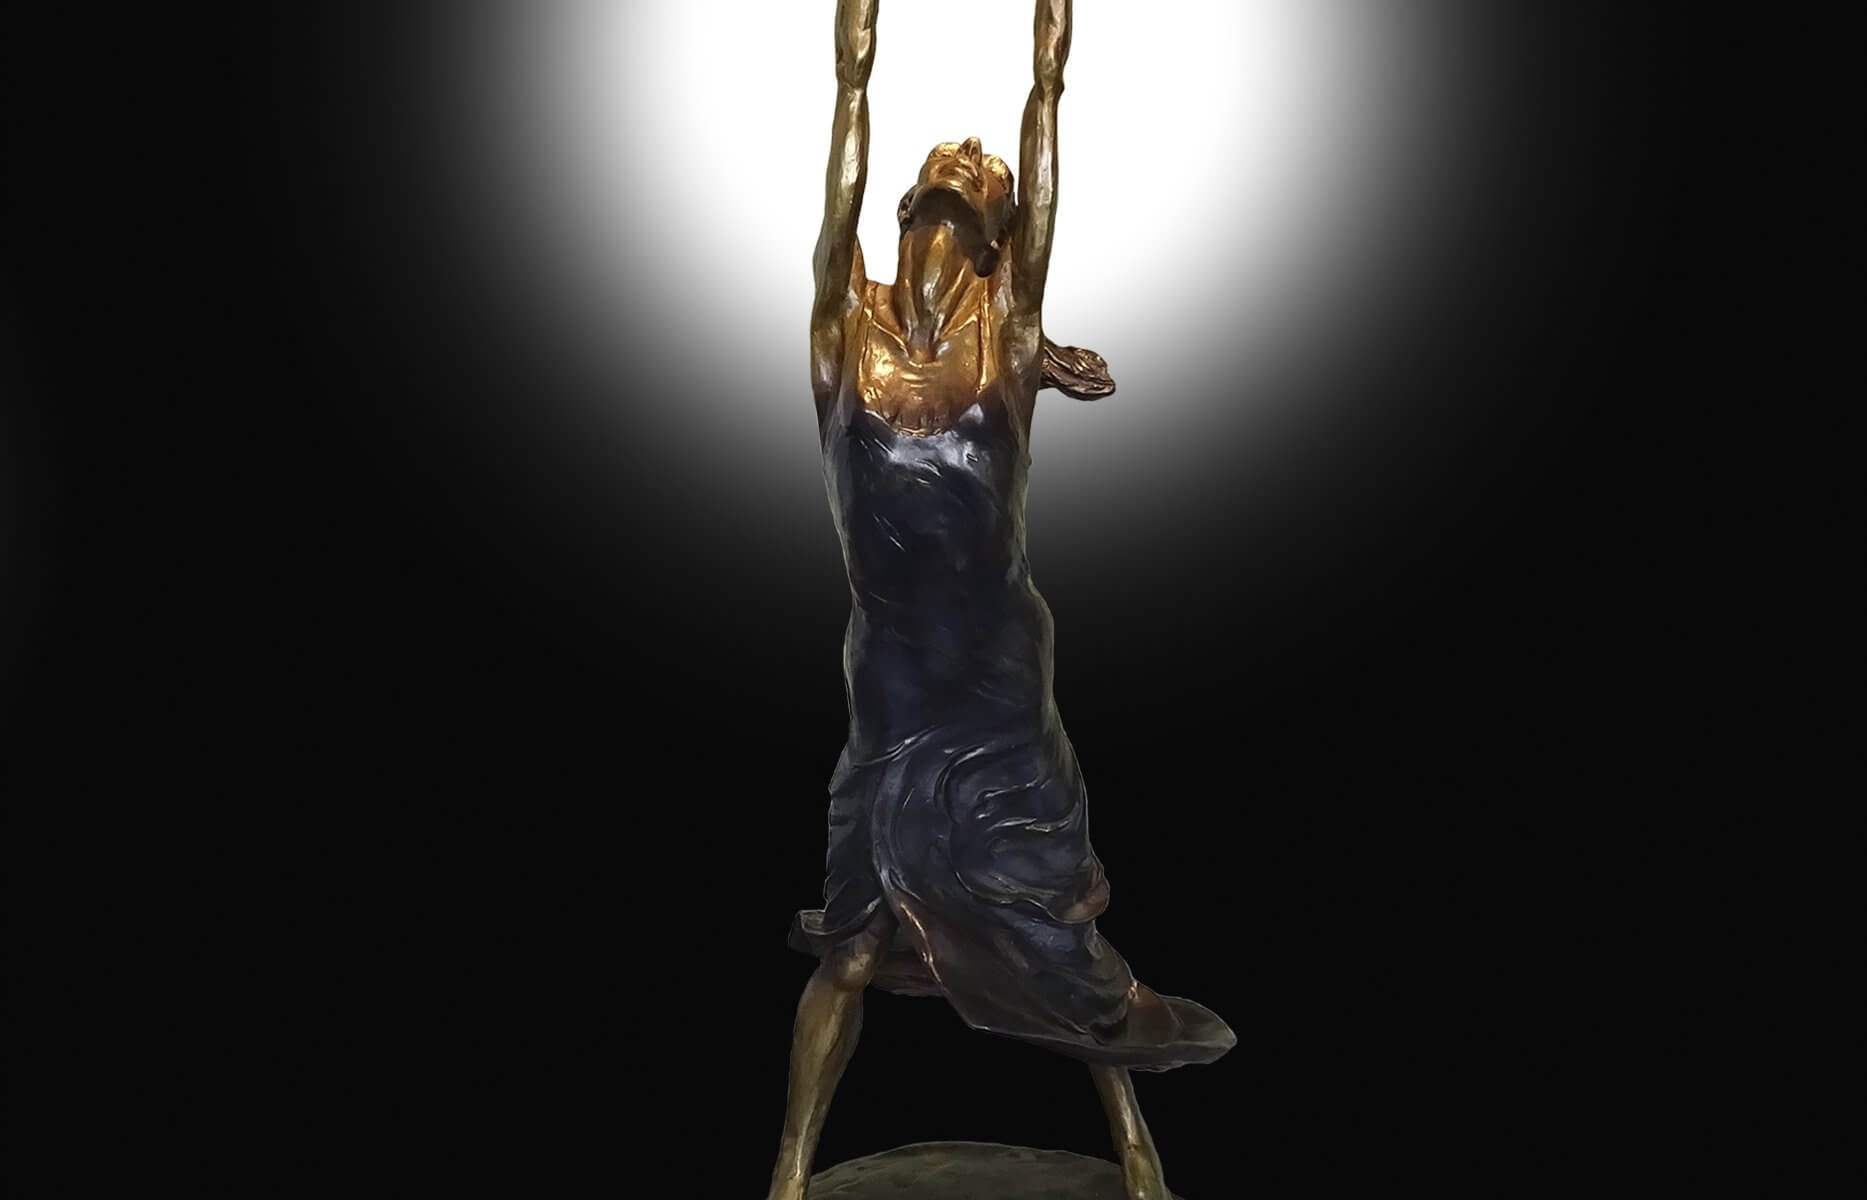 Sound and Fury a bronze sculpture depicting a flamenco dancser by Andrew DeVries. Copyright 2021. Inspired by the flamenco dancer Irene Rodriguez.